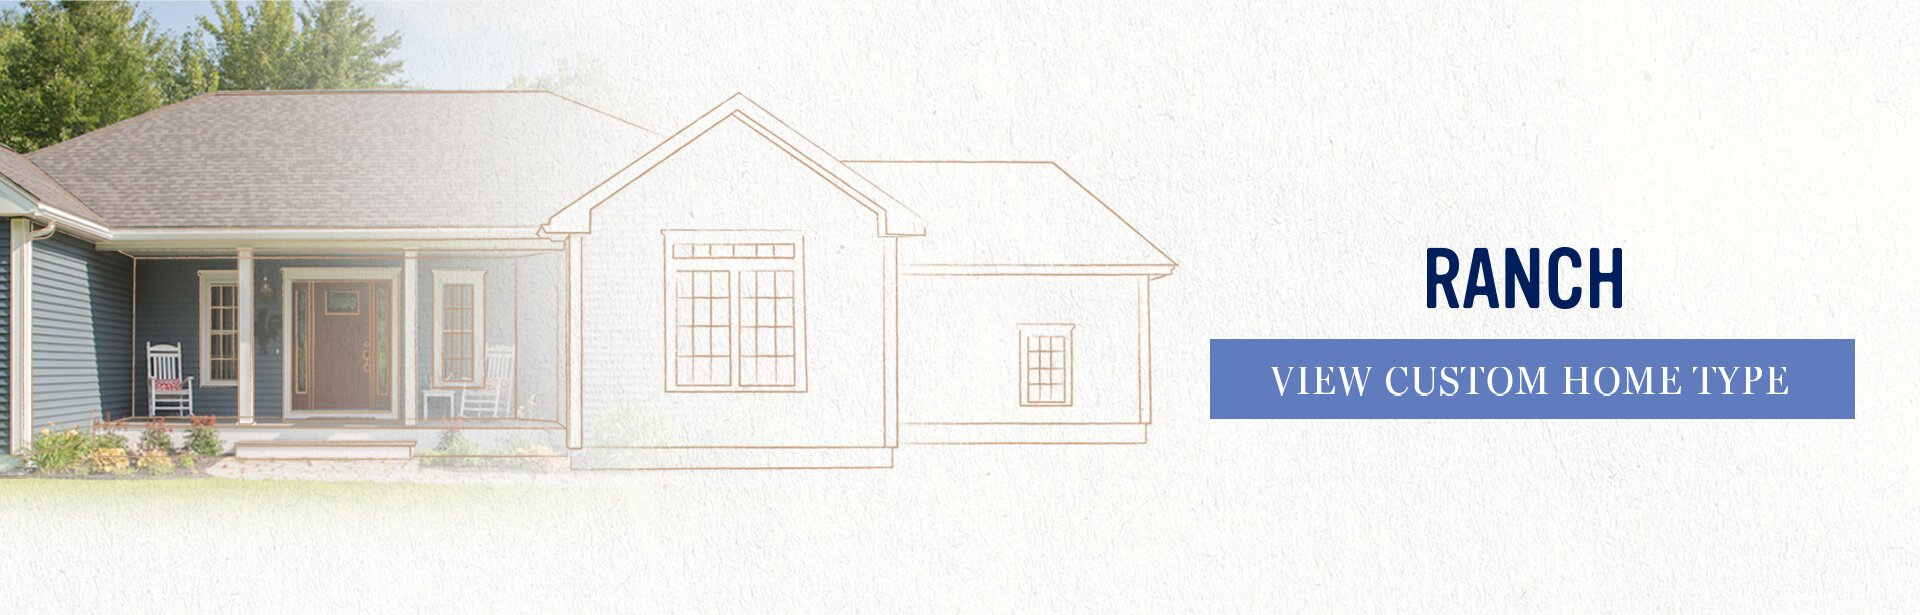 New-Home-Designs-Banner-Ranch-with-Button